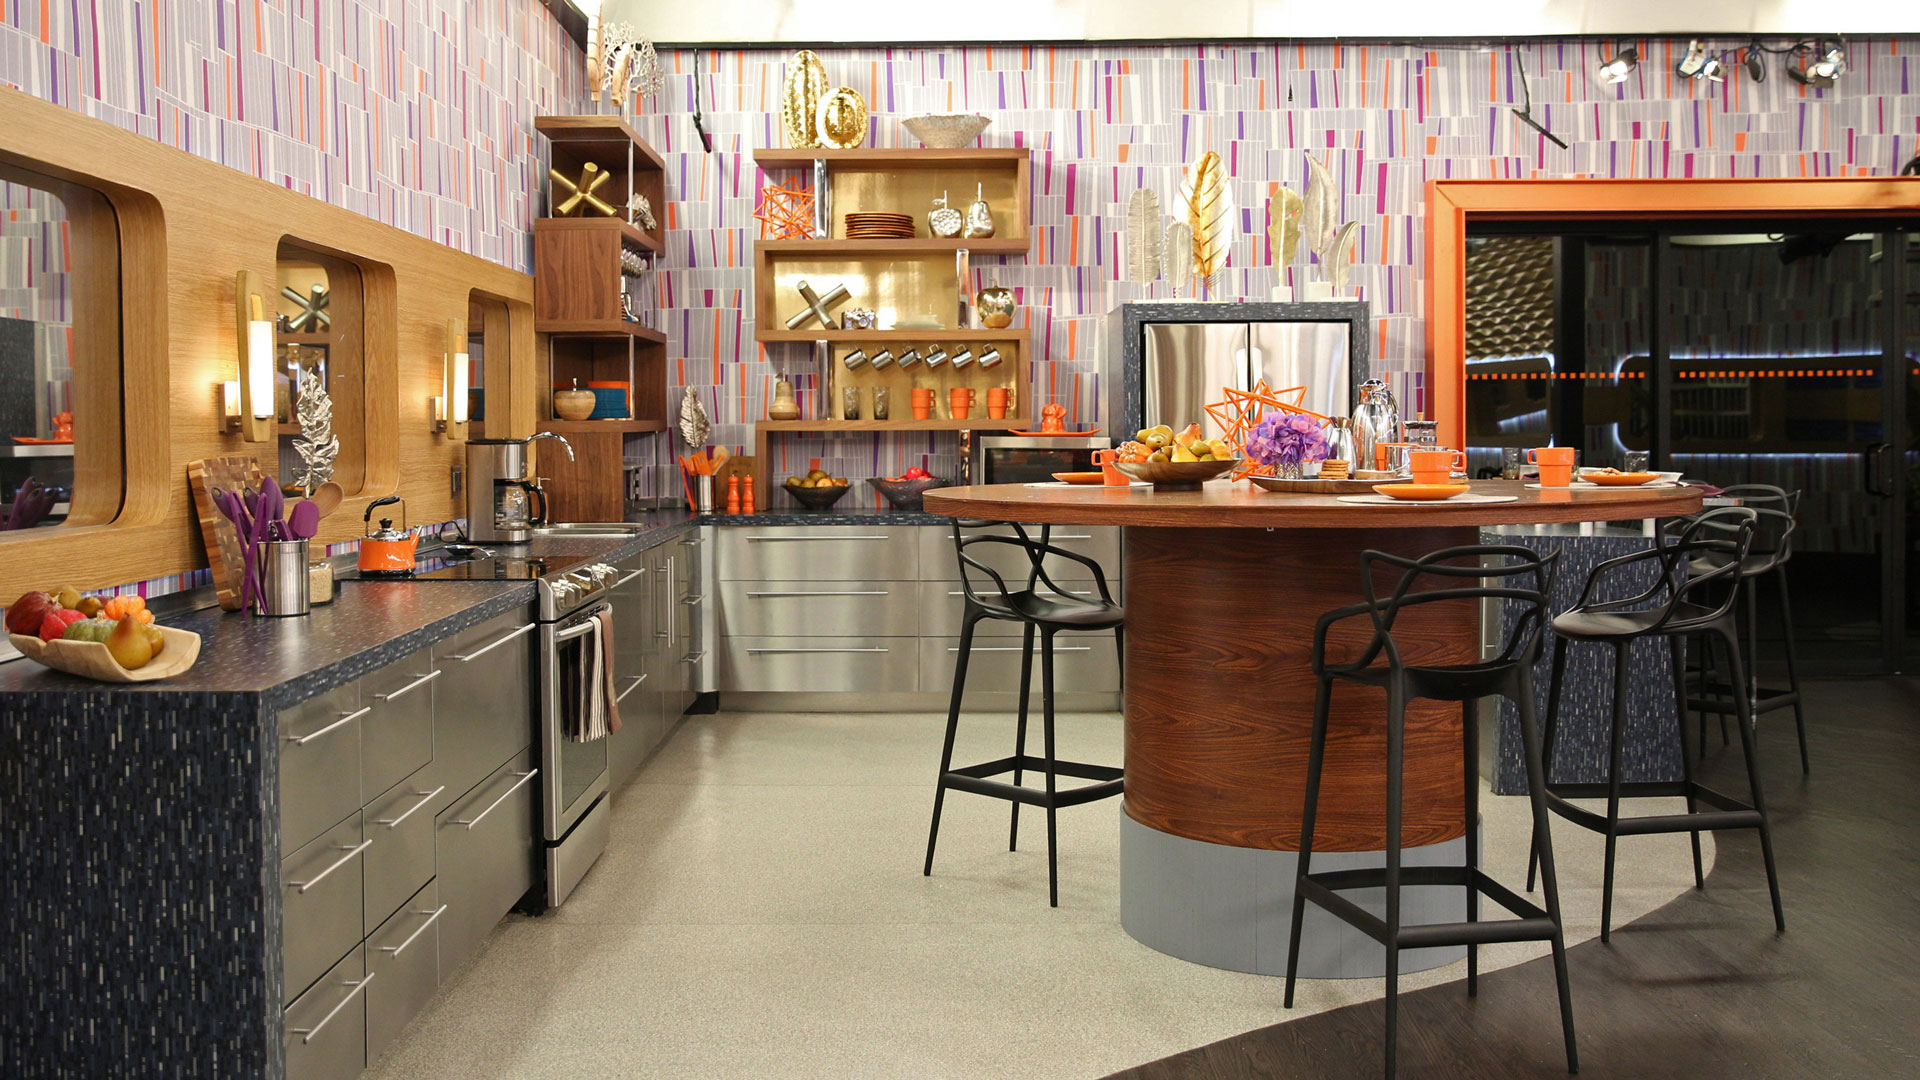 Gone is the jet-engine kitchen centerpiece and in its place is a wood-based island.